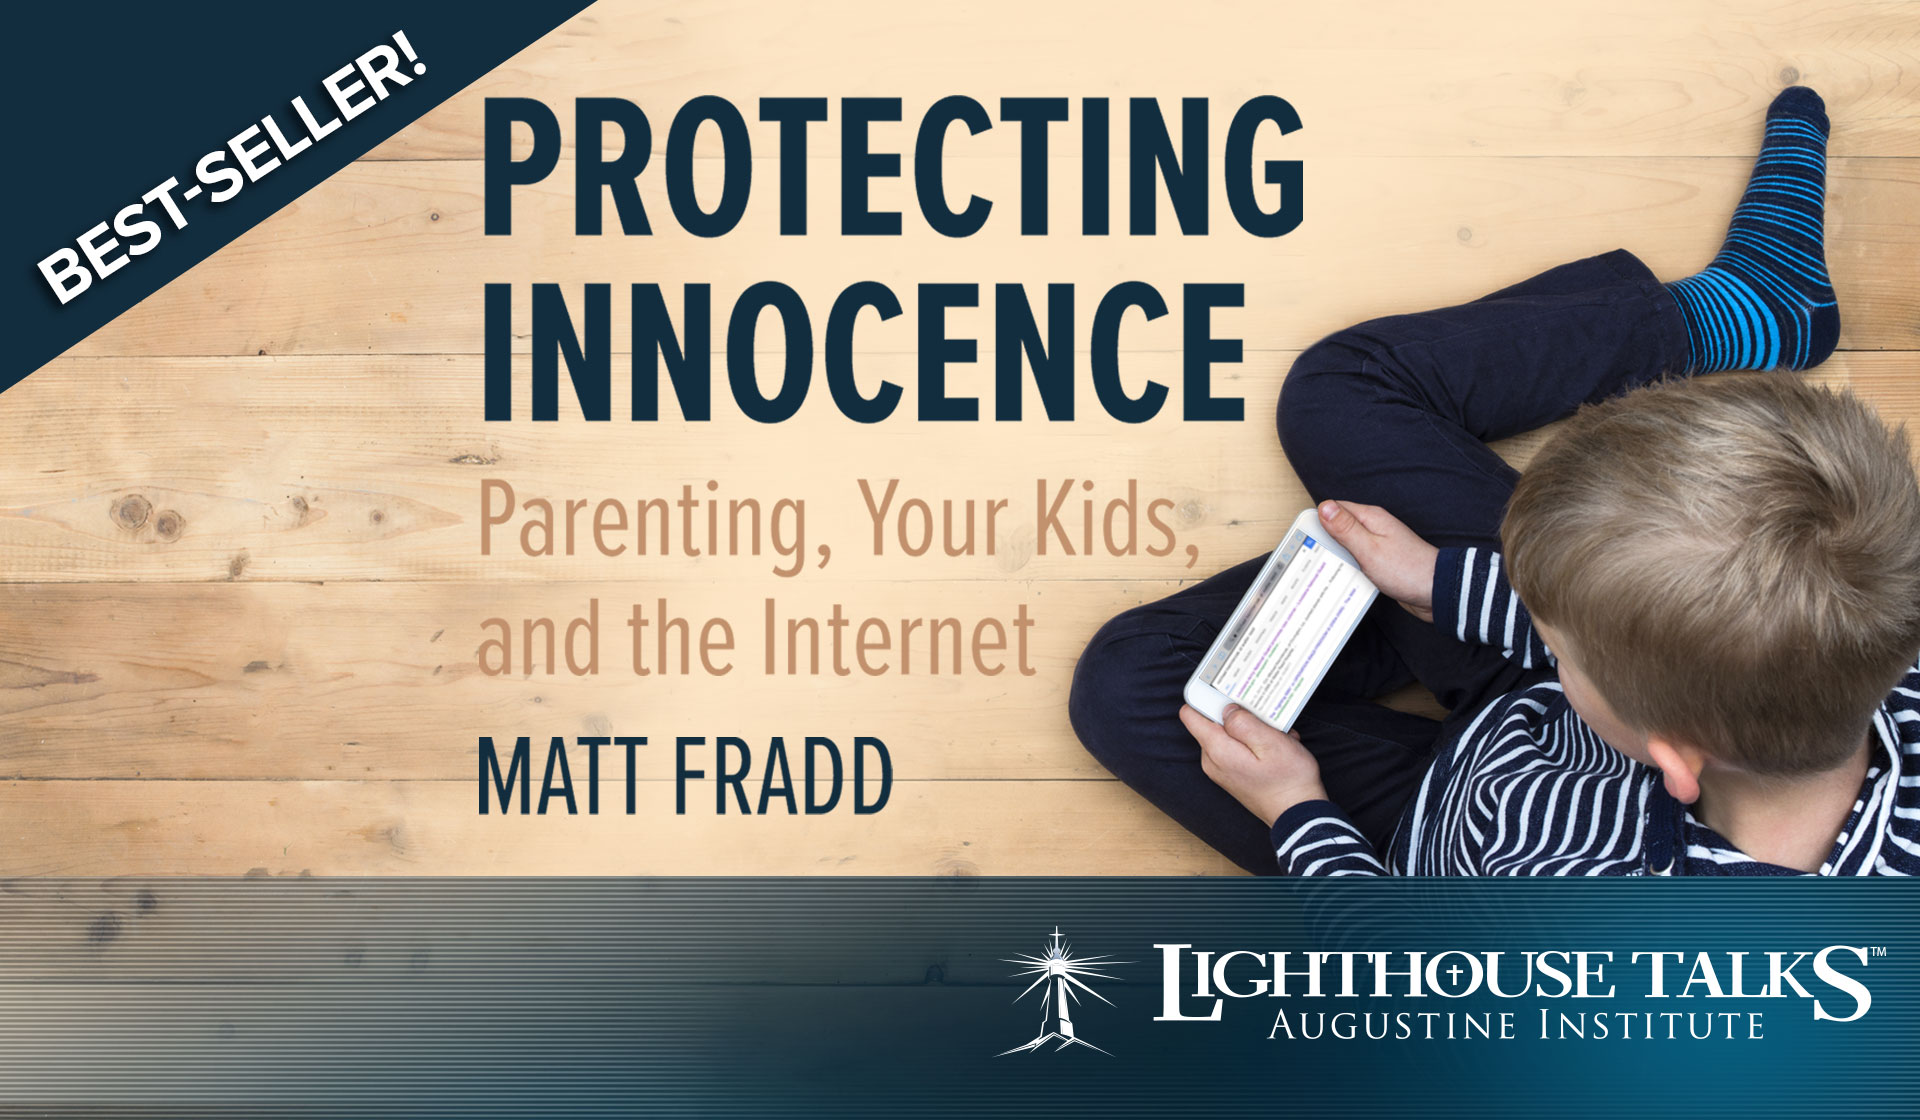 Protecting Innocence